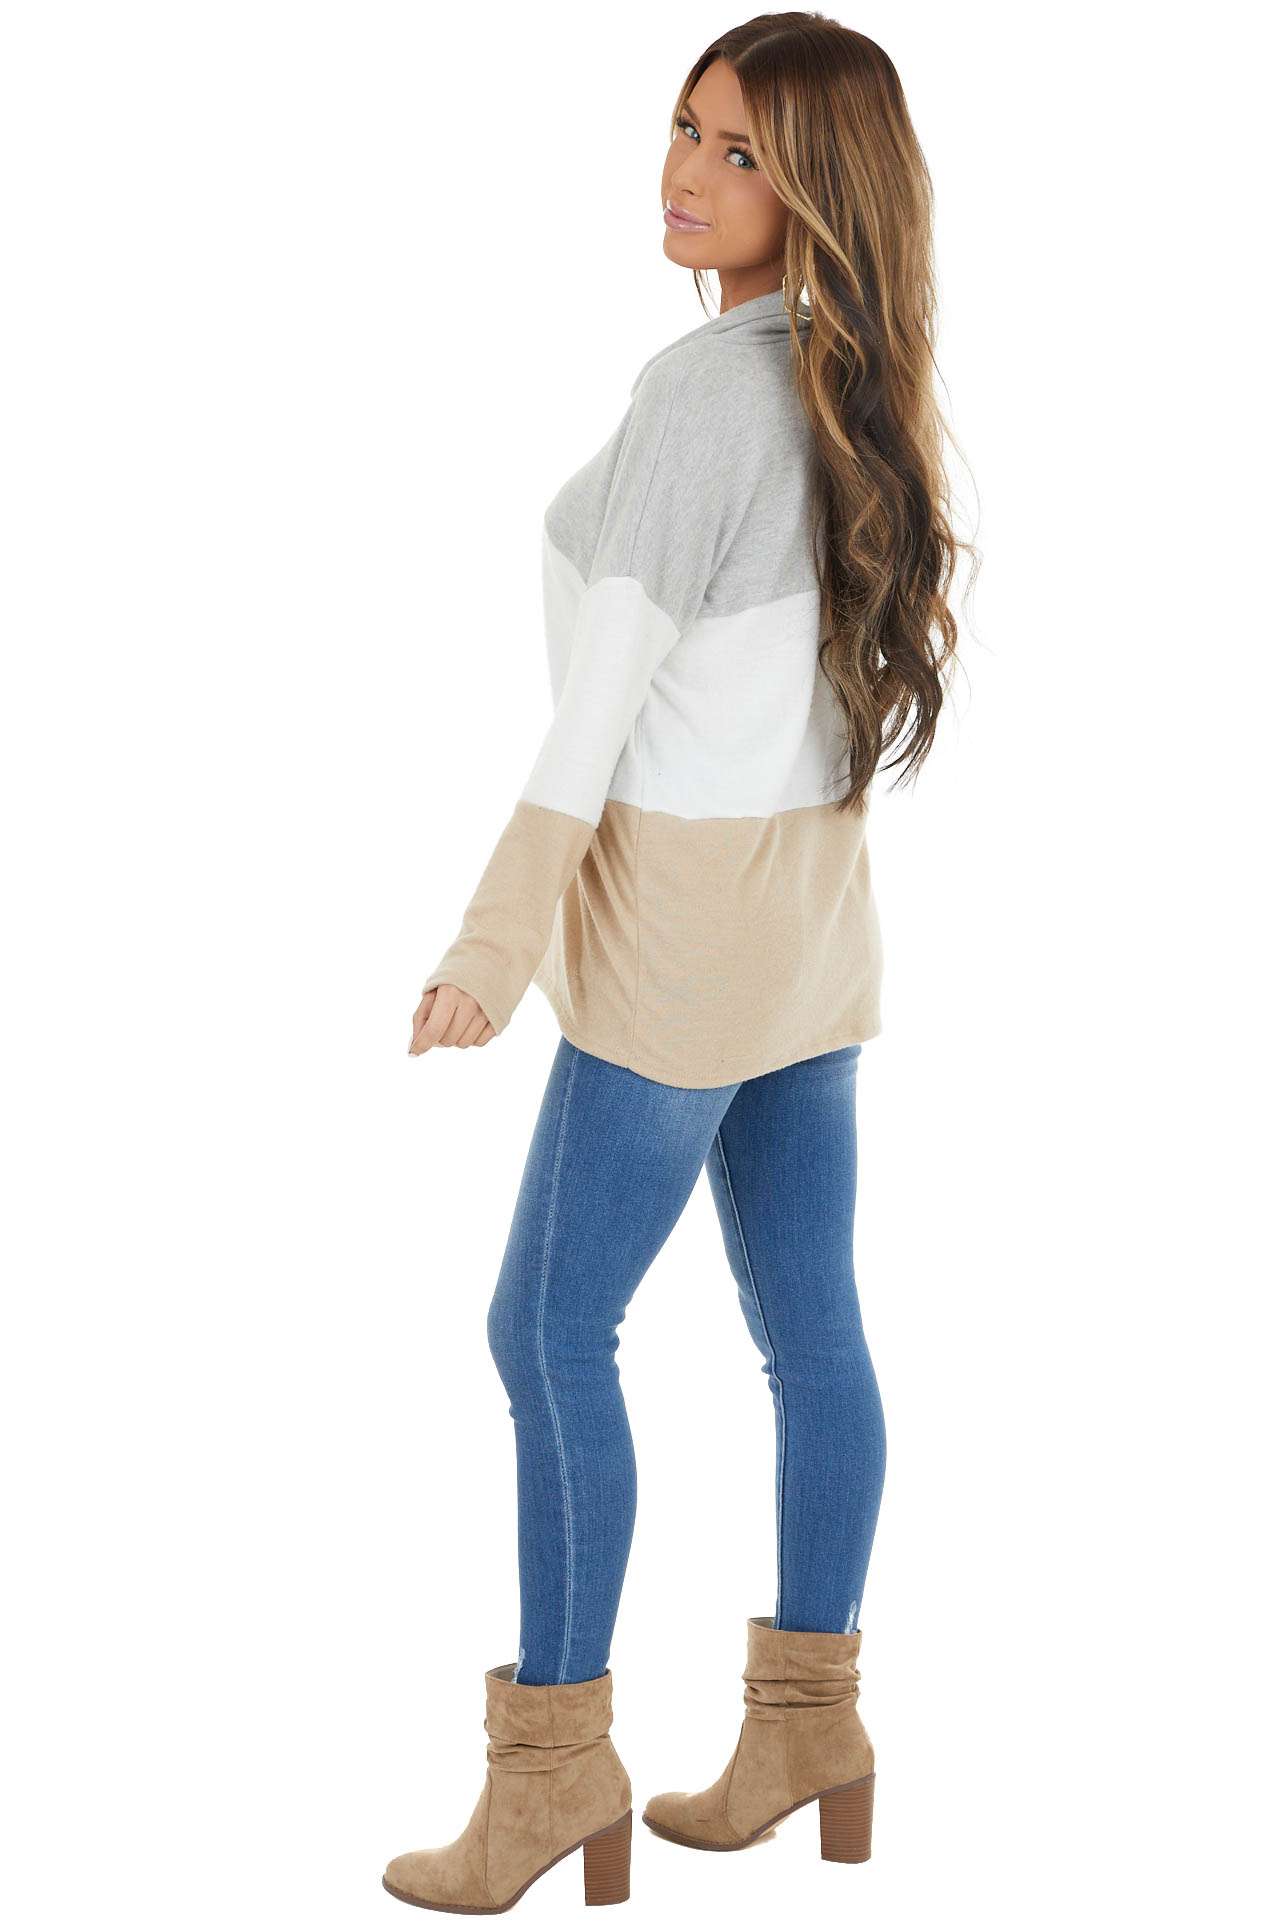 Heather Grey Colorblock Long Sleeve Knit Top with Cowl Neck